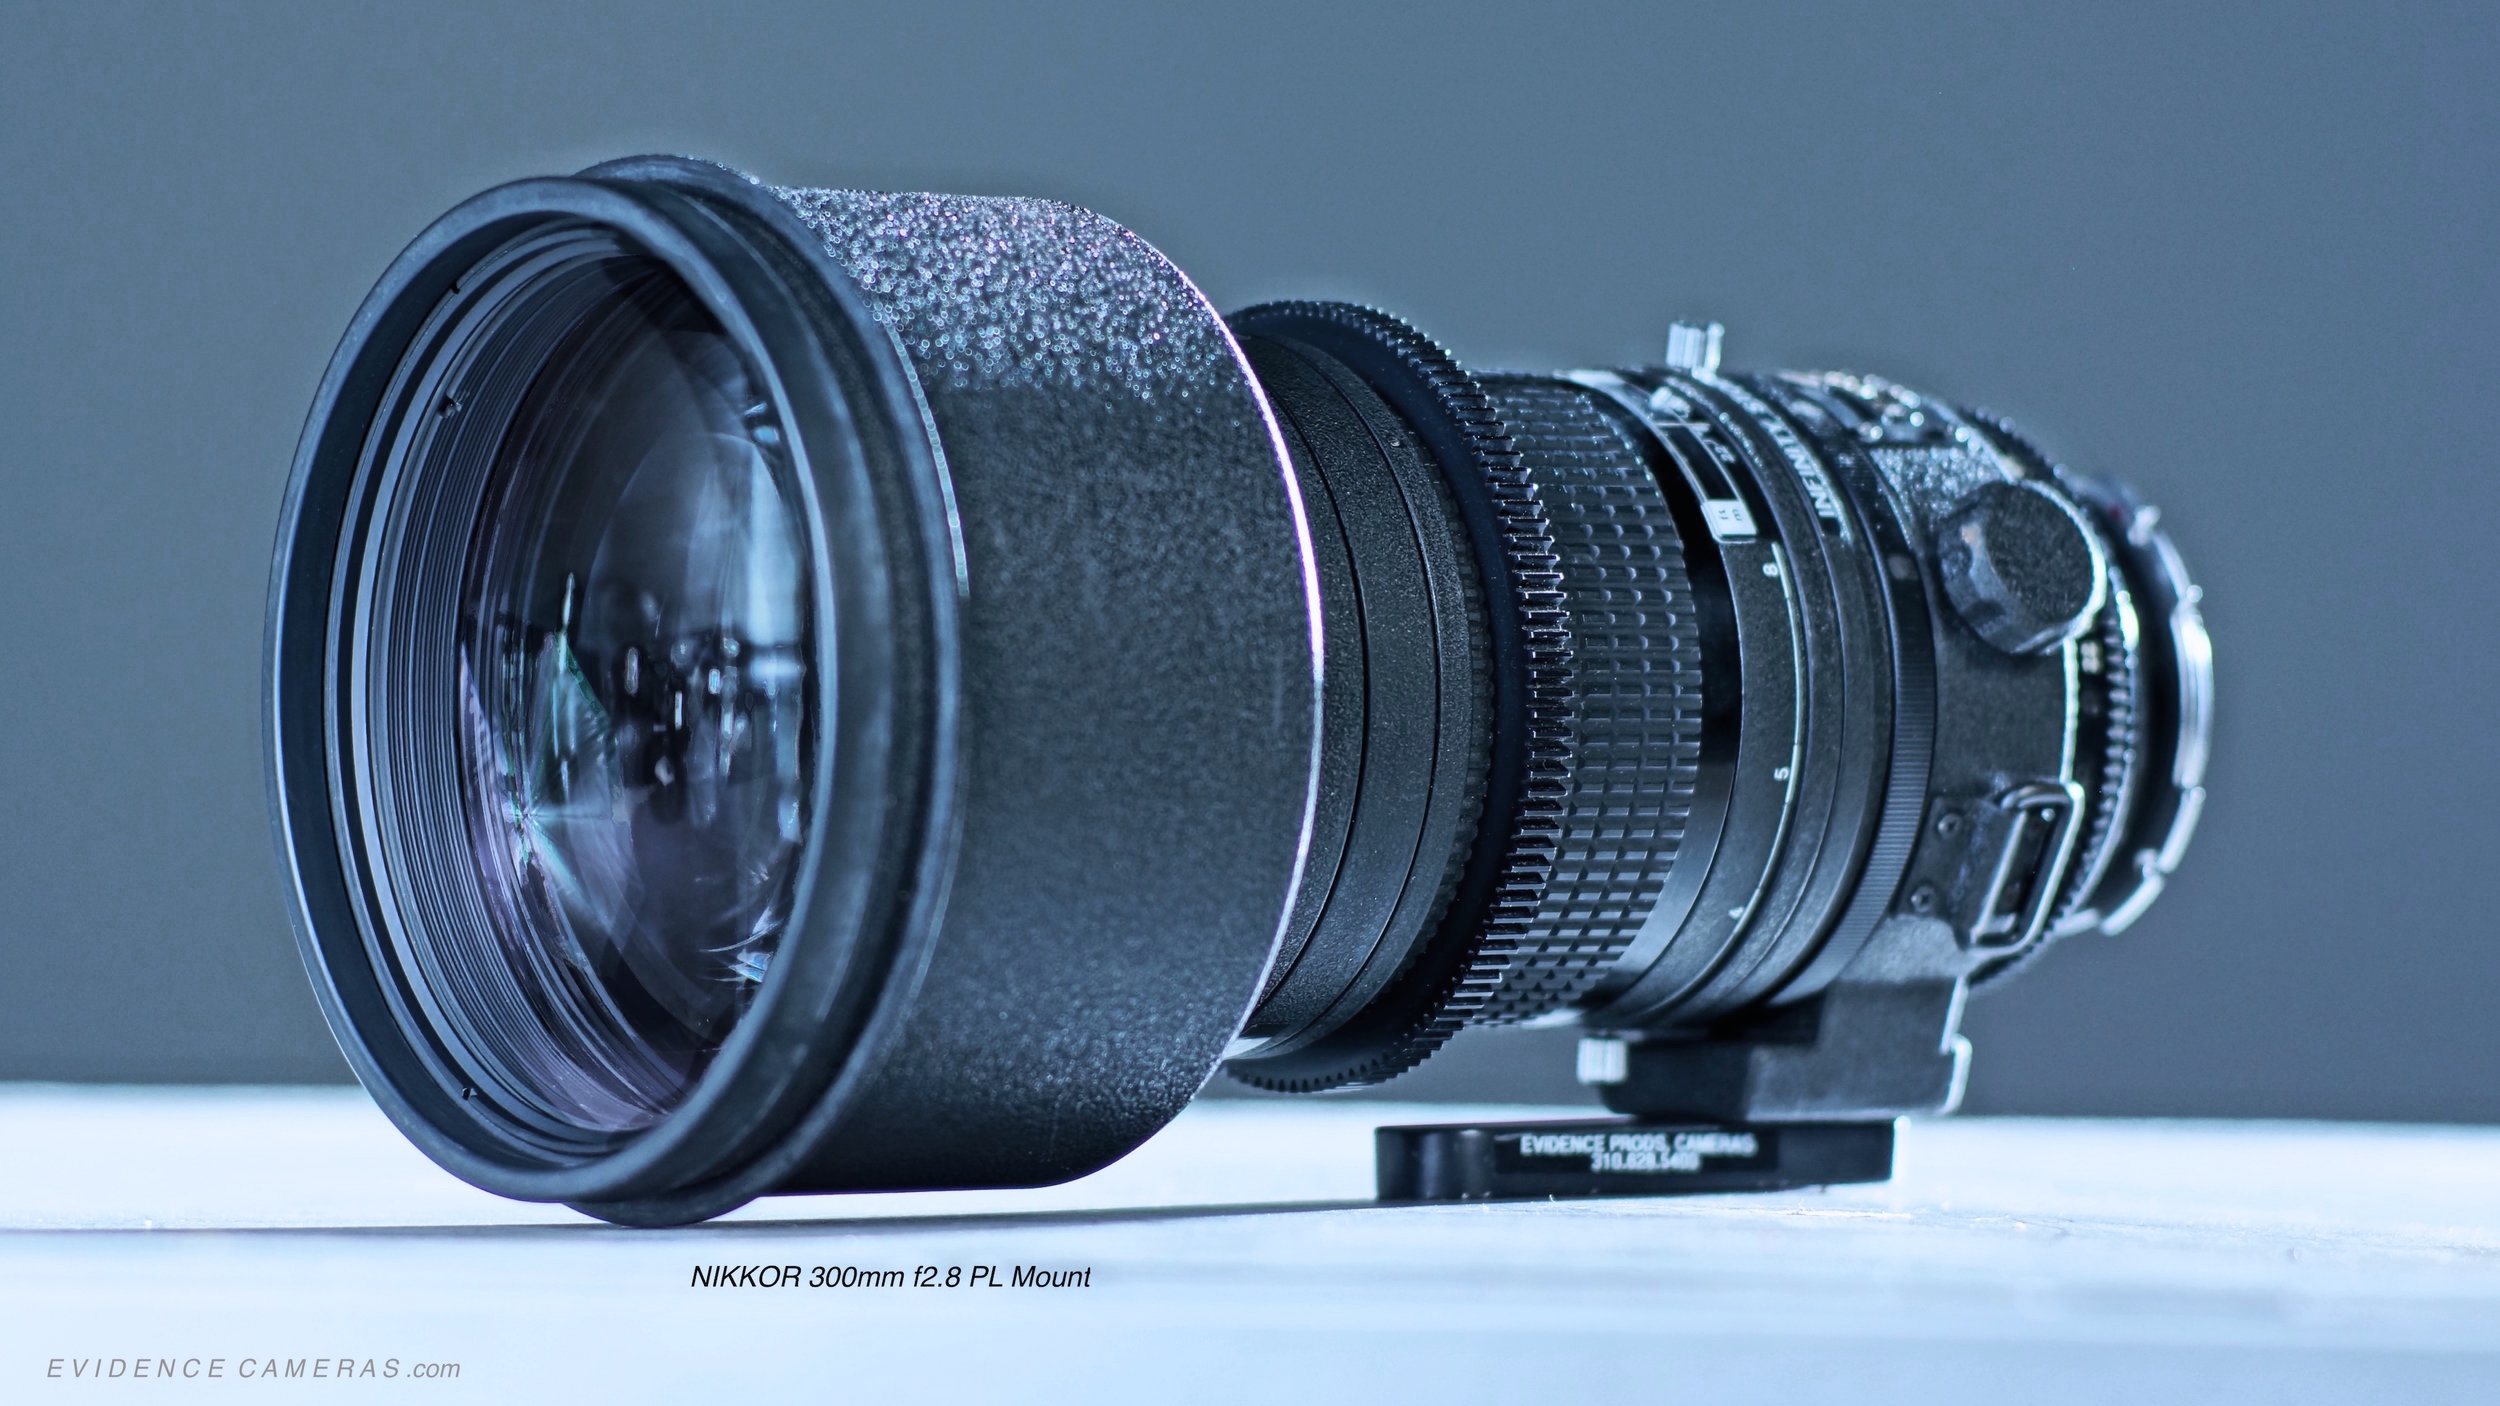 Nikkor 300mm PL Mount Full Frame Cine